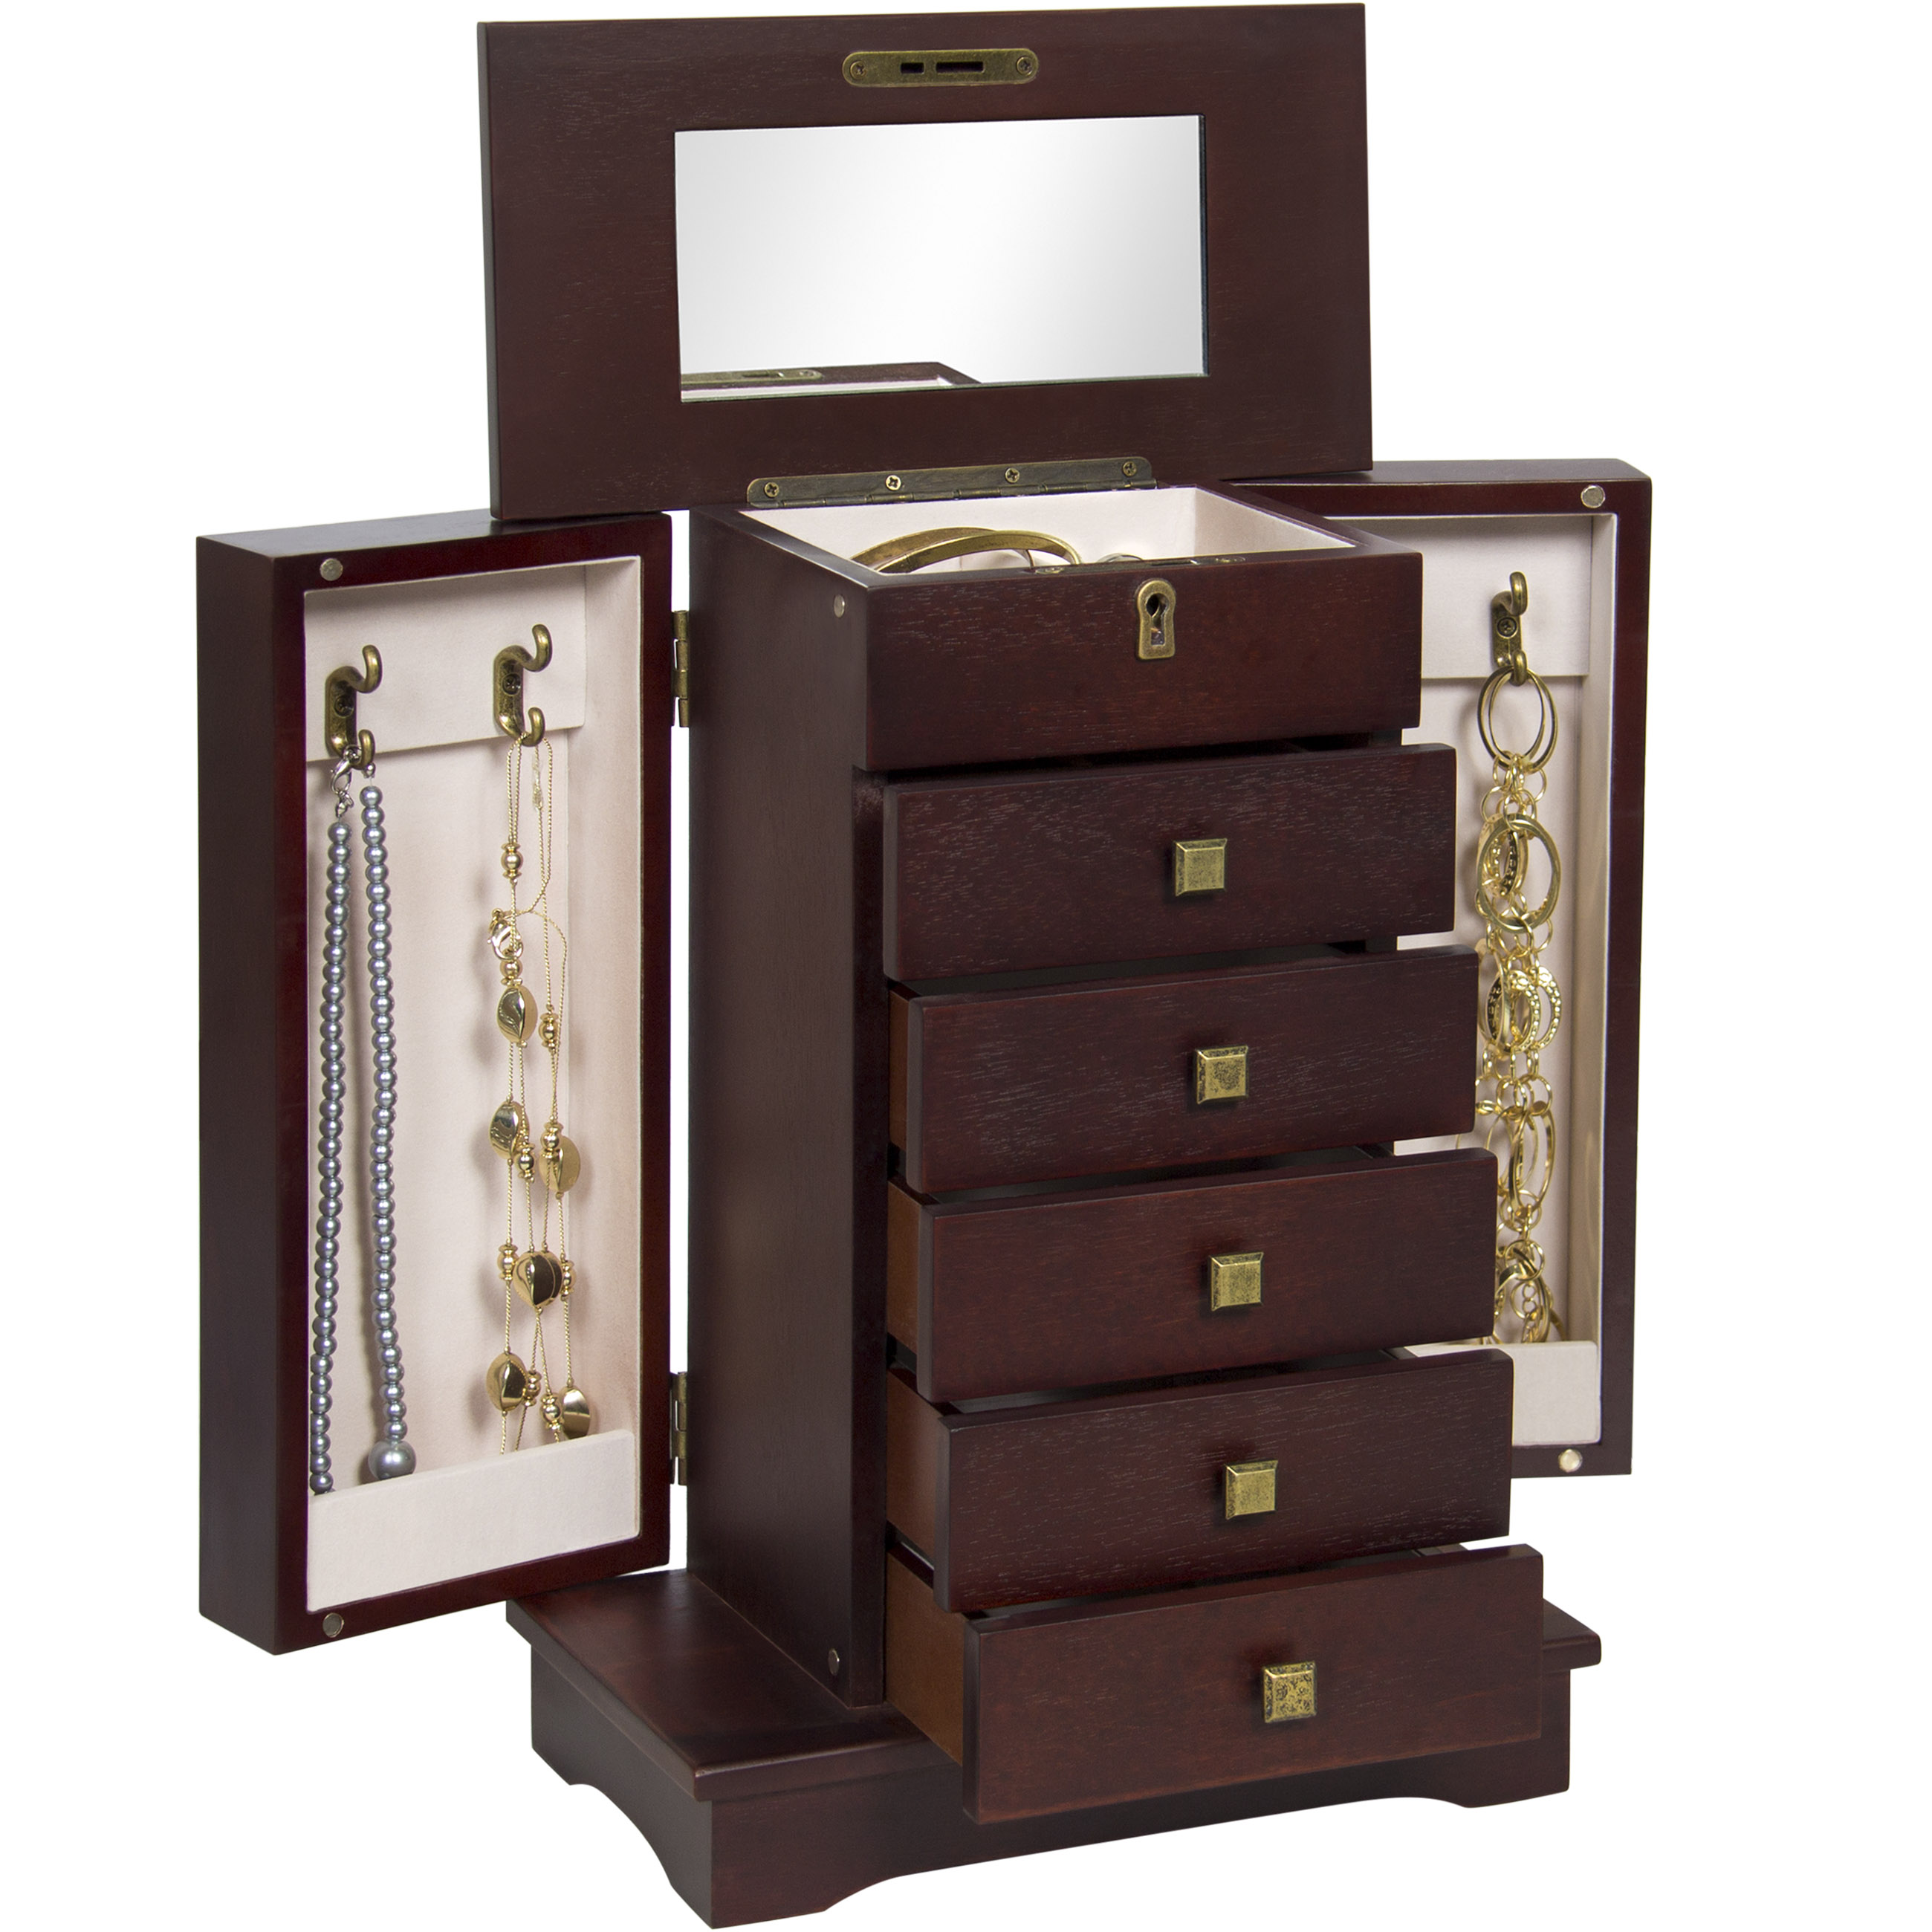 Best Choice Products Handcrafted Wooden Jewelry Box Organizer Wood Armoire Cabinet by Best Choice Products